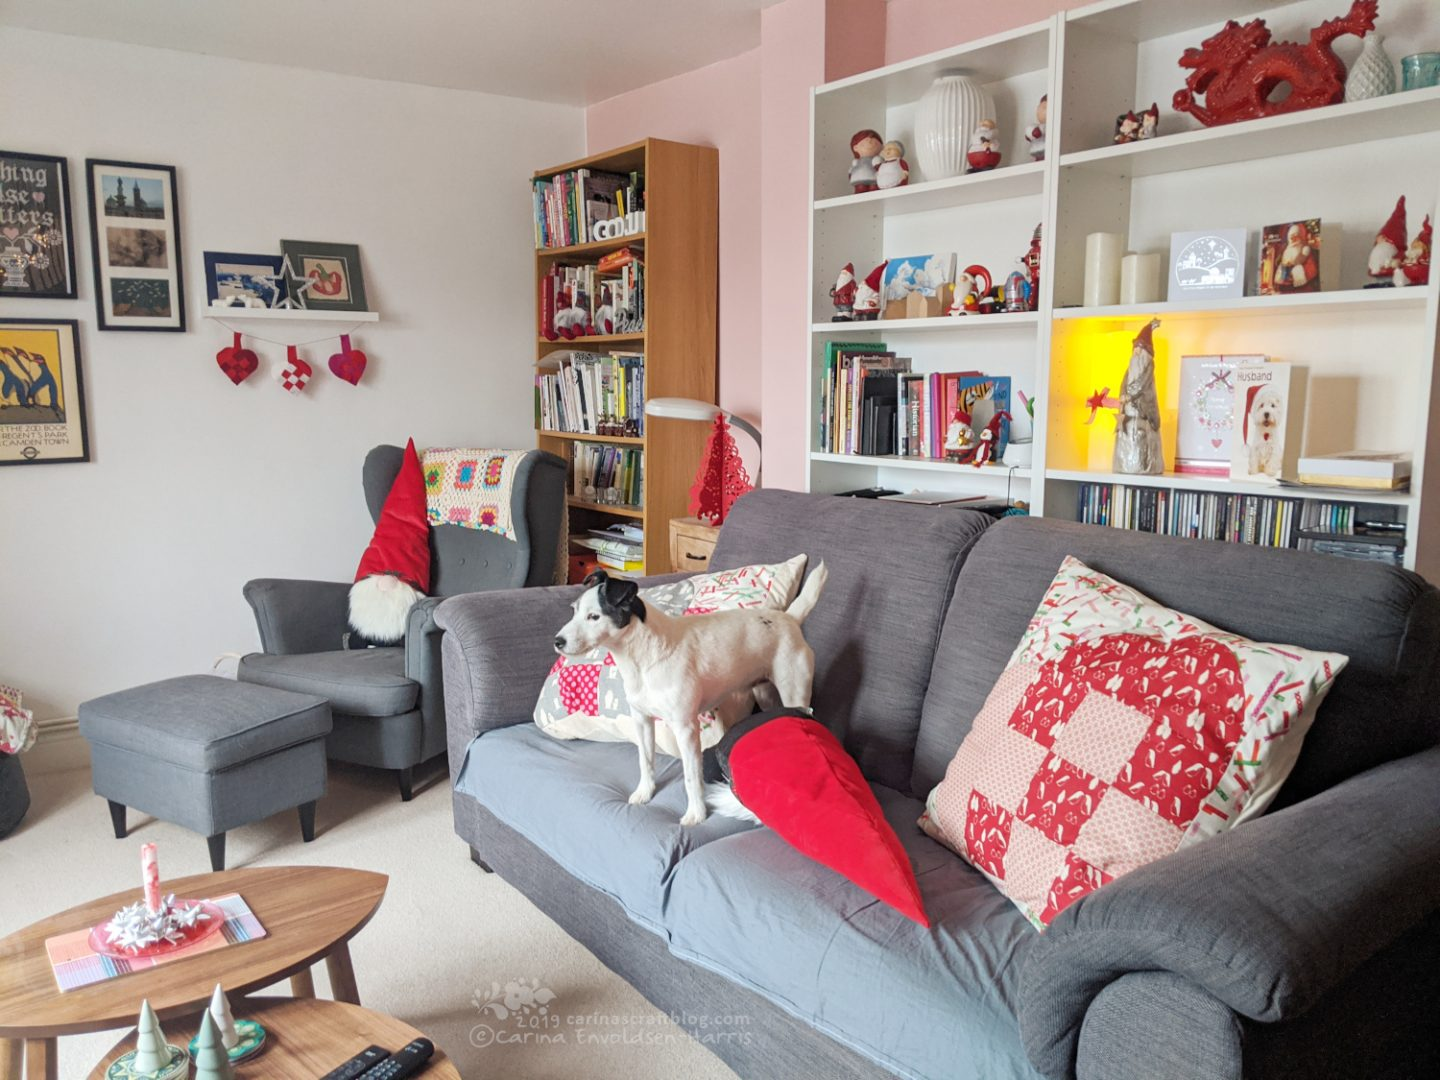 Dog standing on sofa, cushions falling all over the place.